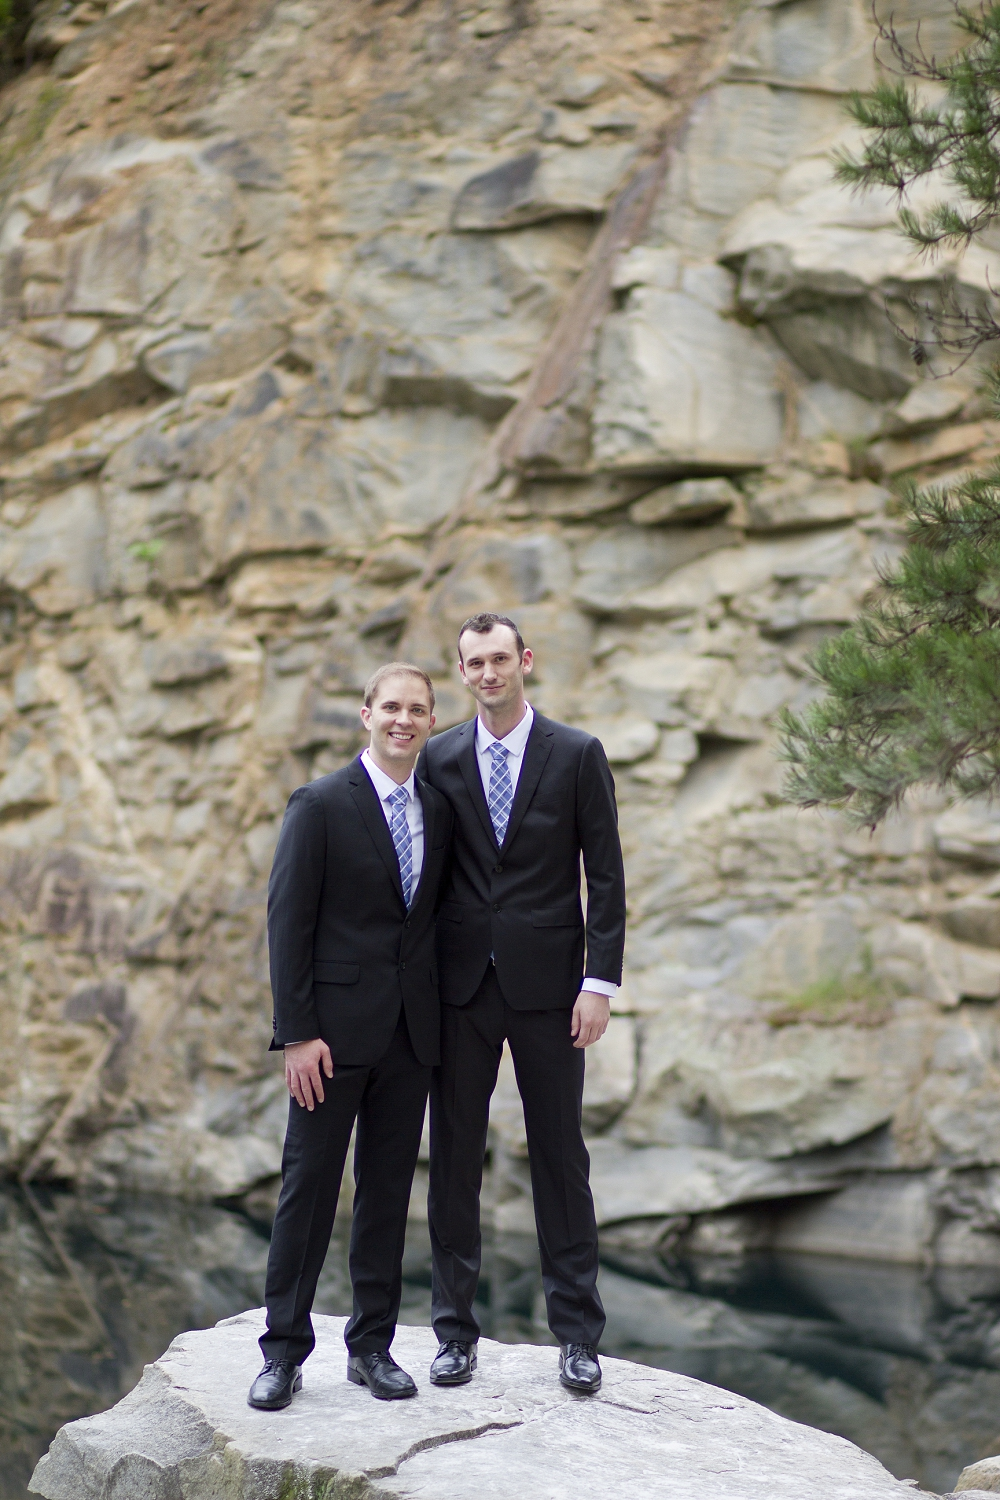 north_carolina_rock_quarry_wedding_carrigan_farms01.jpg